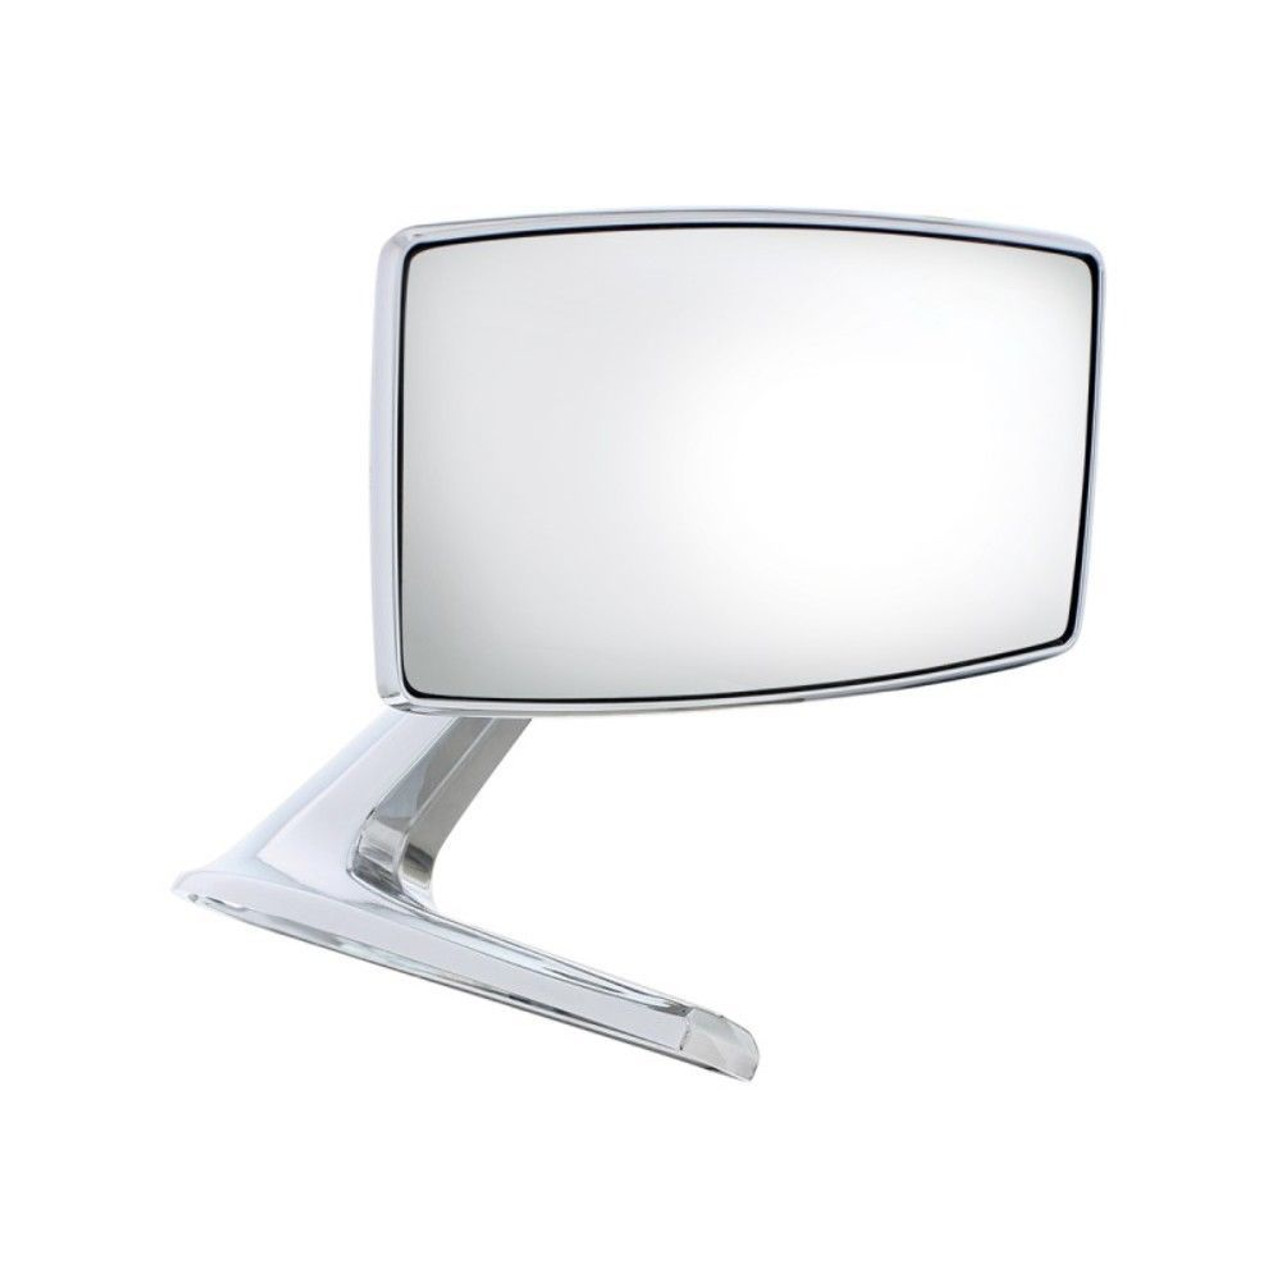 1967-68 Ford Mustang Exterior Mirror With Convex Glass, Right-Hand / Passenger